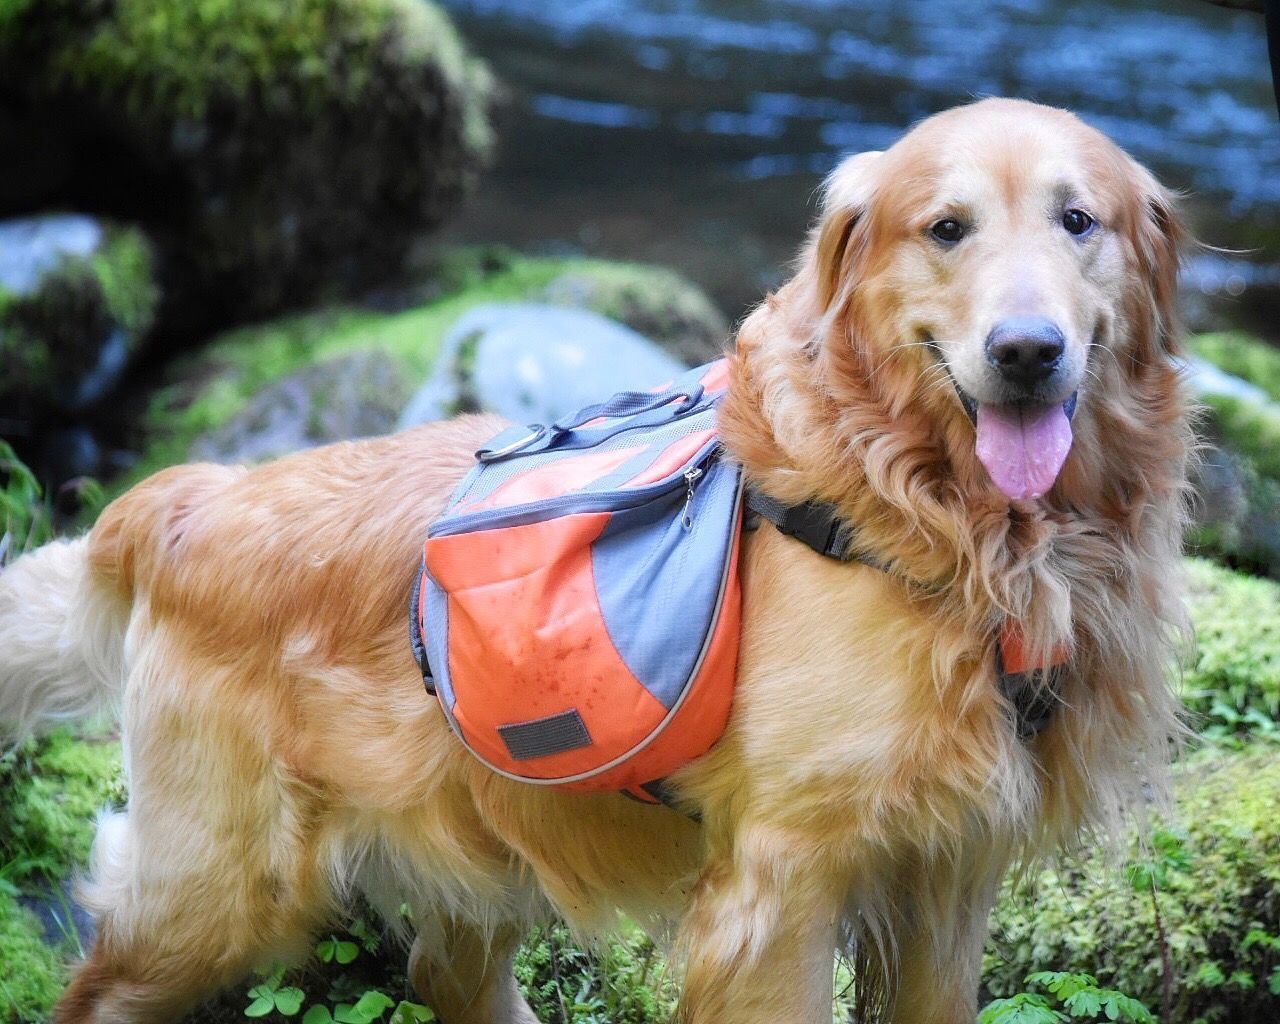 Dog Pets One Animal Animal Themes Domestic Animals Mammal Golden Retriever Portrait Outdoors Looking At Camera No People Day Nature Close-up Pet Photography  Dogs Of EyeEm Backpacking Dog Pack Hikingadventures Golden Retriever Hiking Nature Focus On Foreground The Great Outdoors - 2017 EyeEm Awards